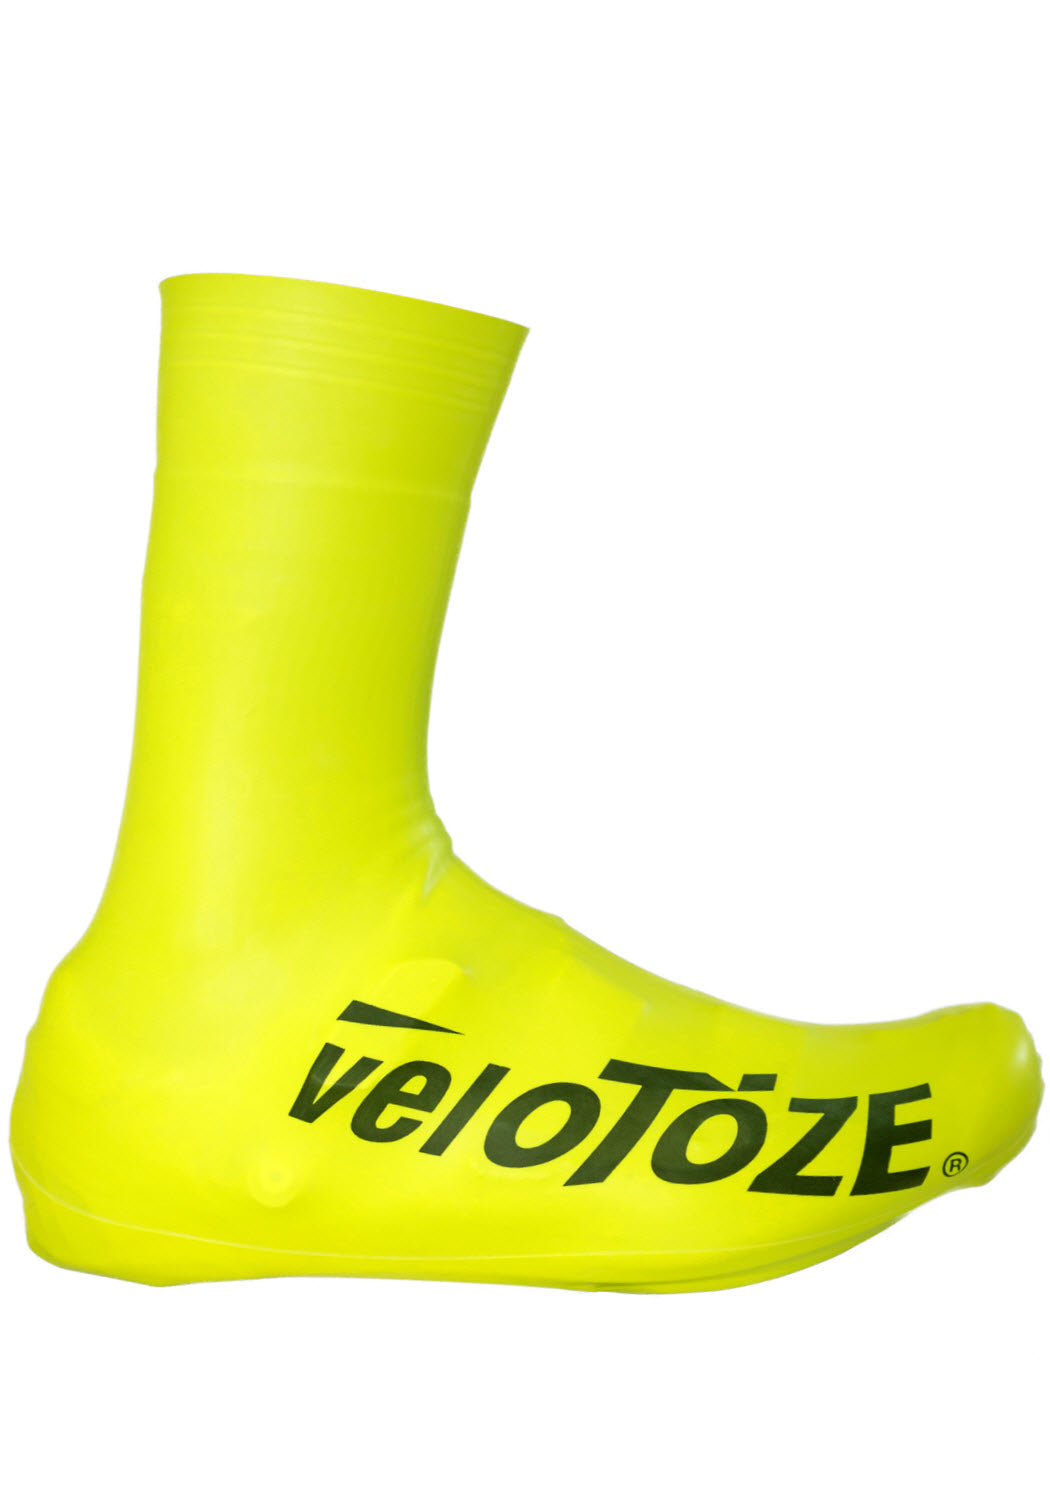 veloToze Tall Shoe Cover - Road 2.0